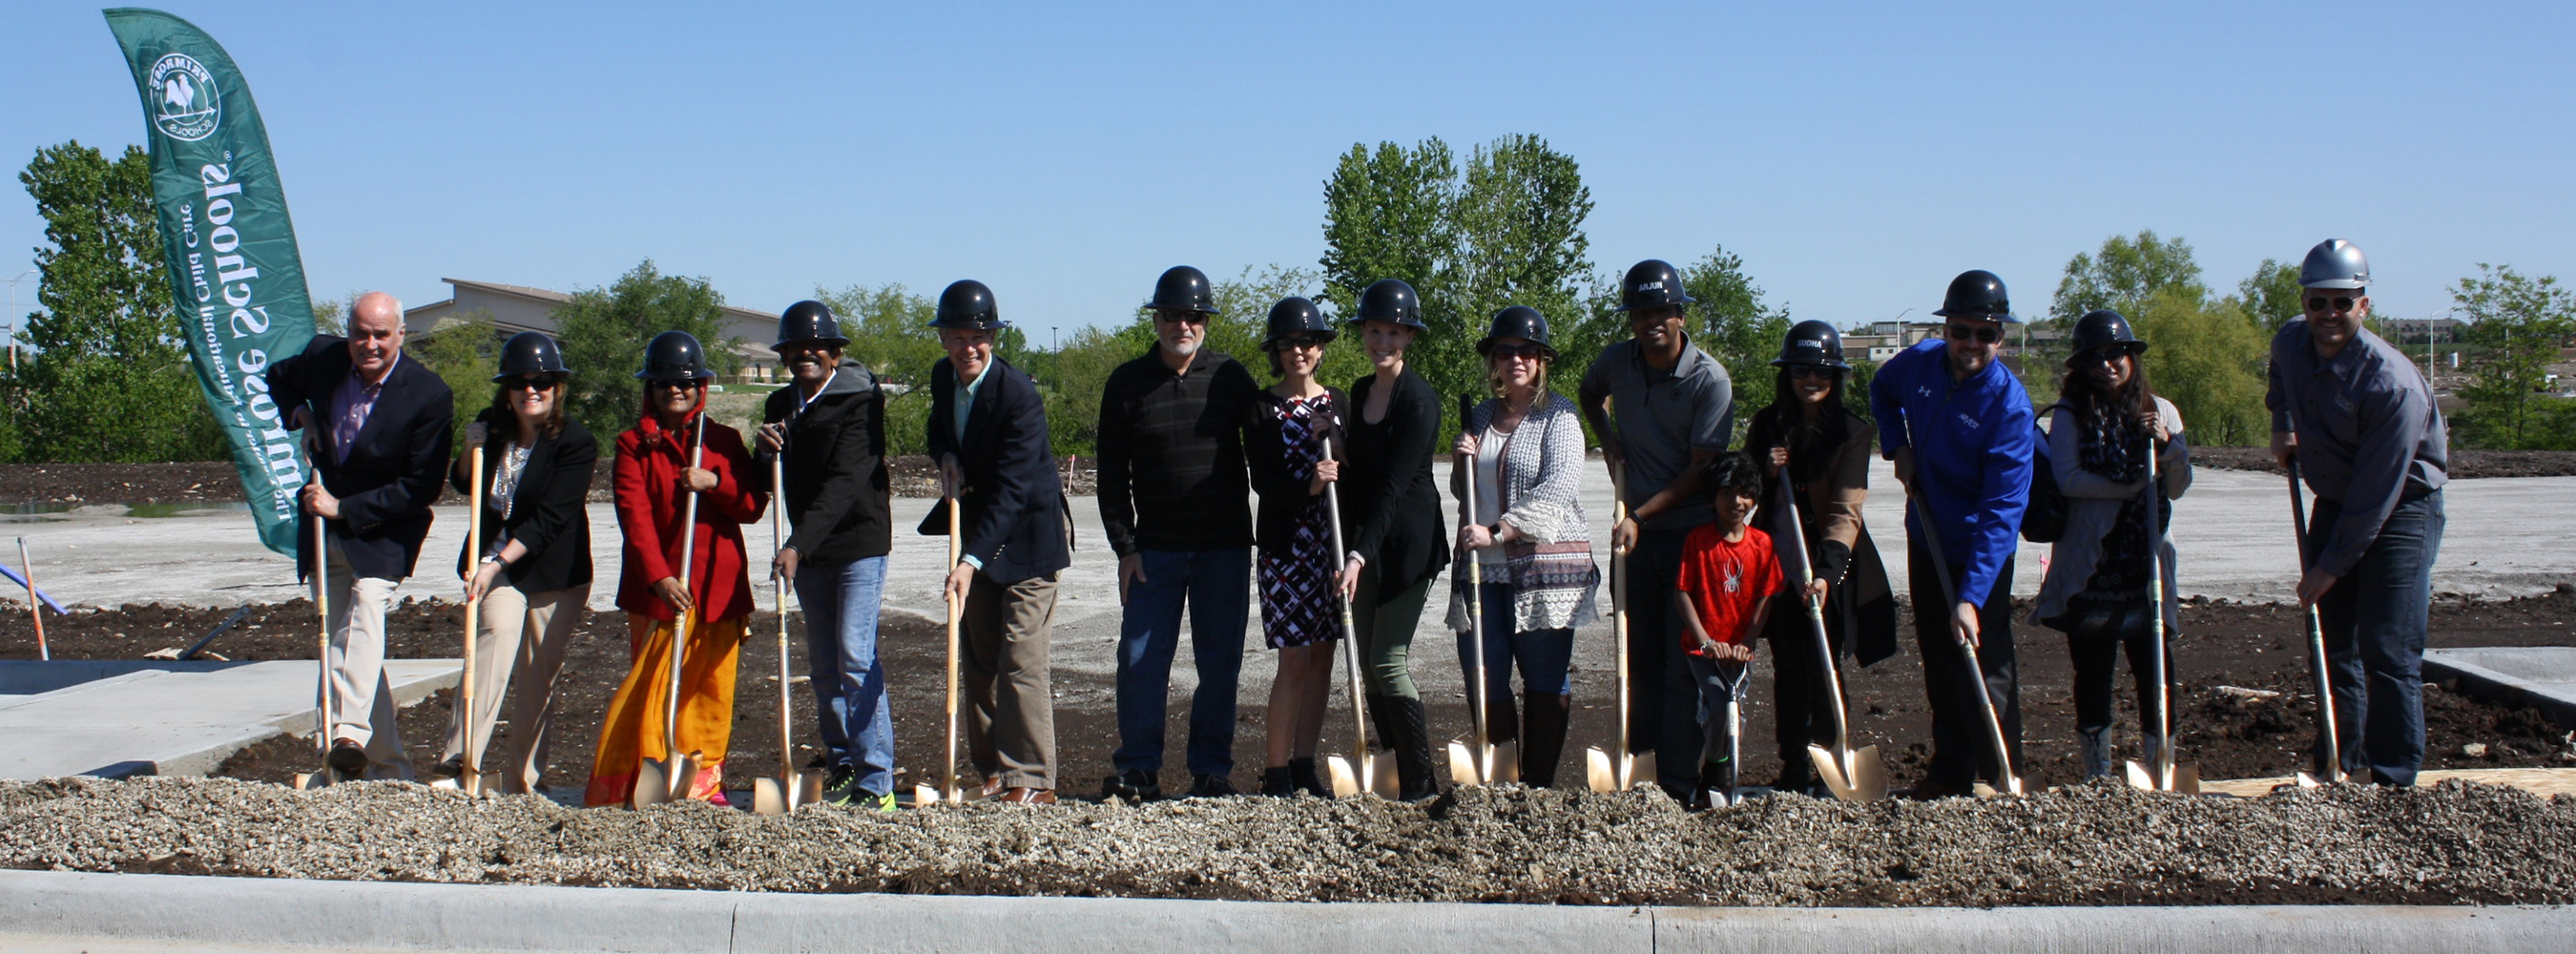 Banner image of group of people breaking ground on new construction site with shovels